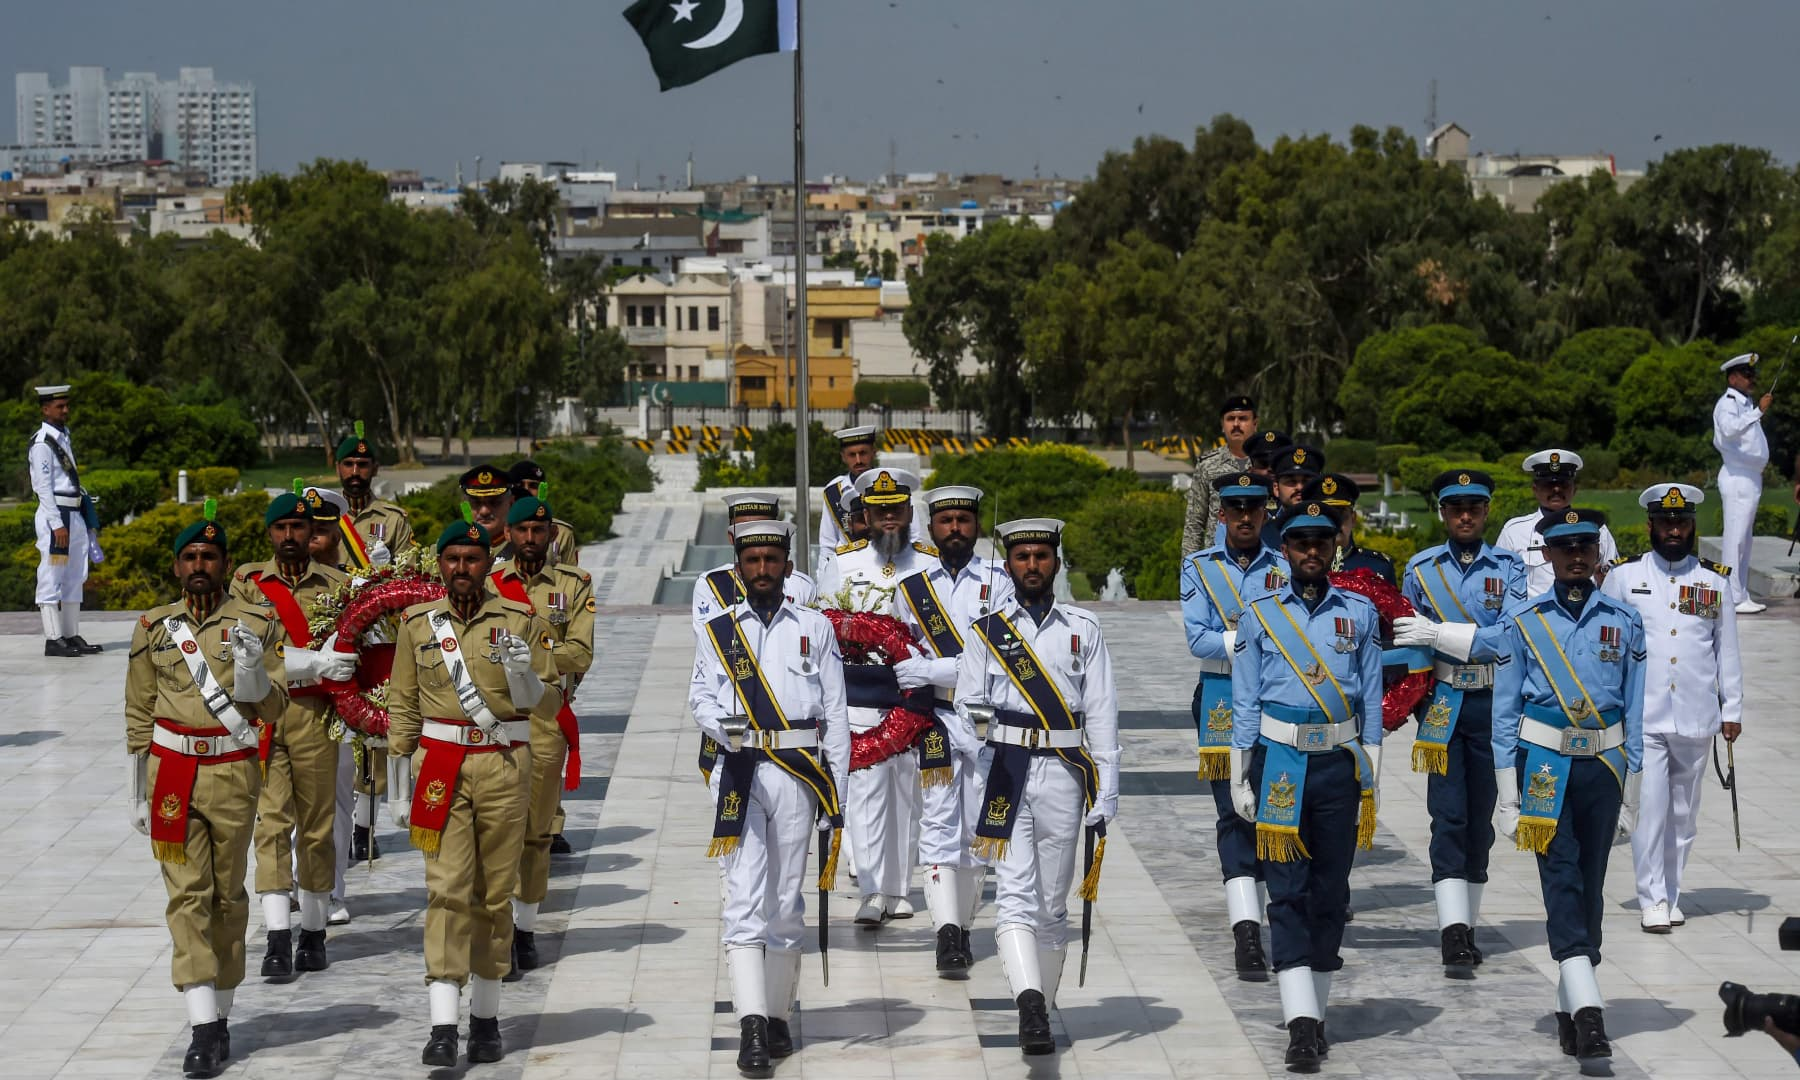 Soldiers march to lay wreaths on the mausoleum of founder Muhammad Ali Jinnah during Independence Day celebrations in Karachi on August 14. — AFP